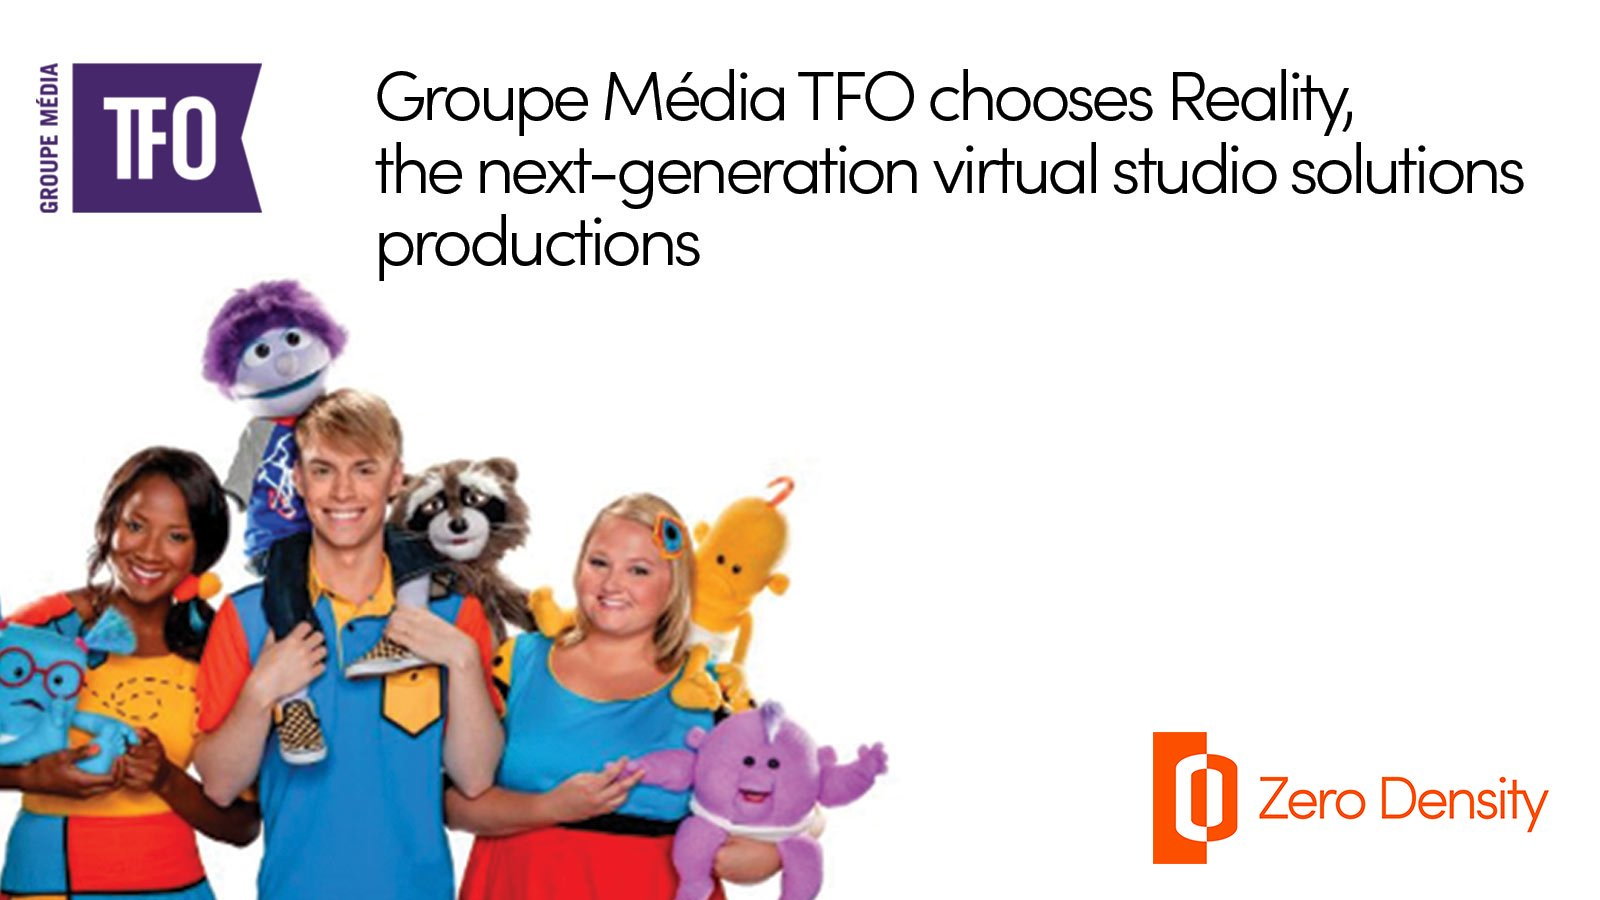 groupe media tfo with reality